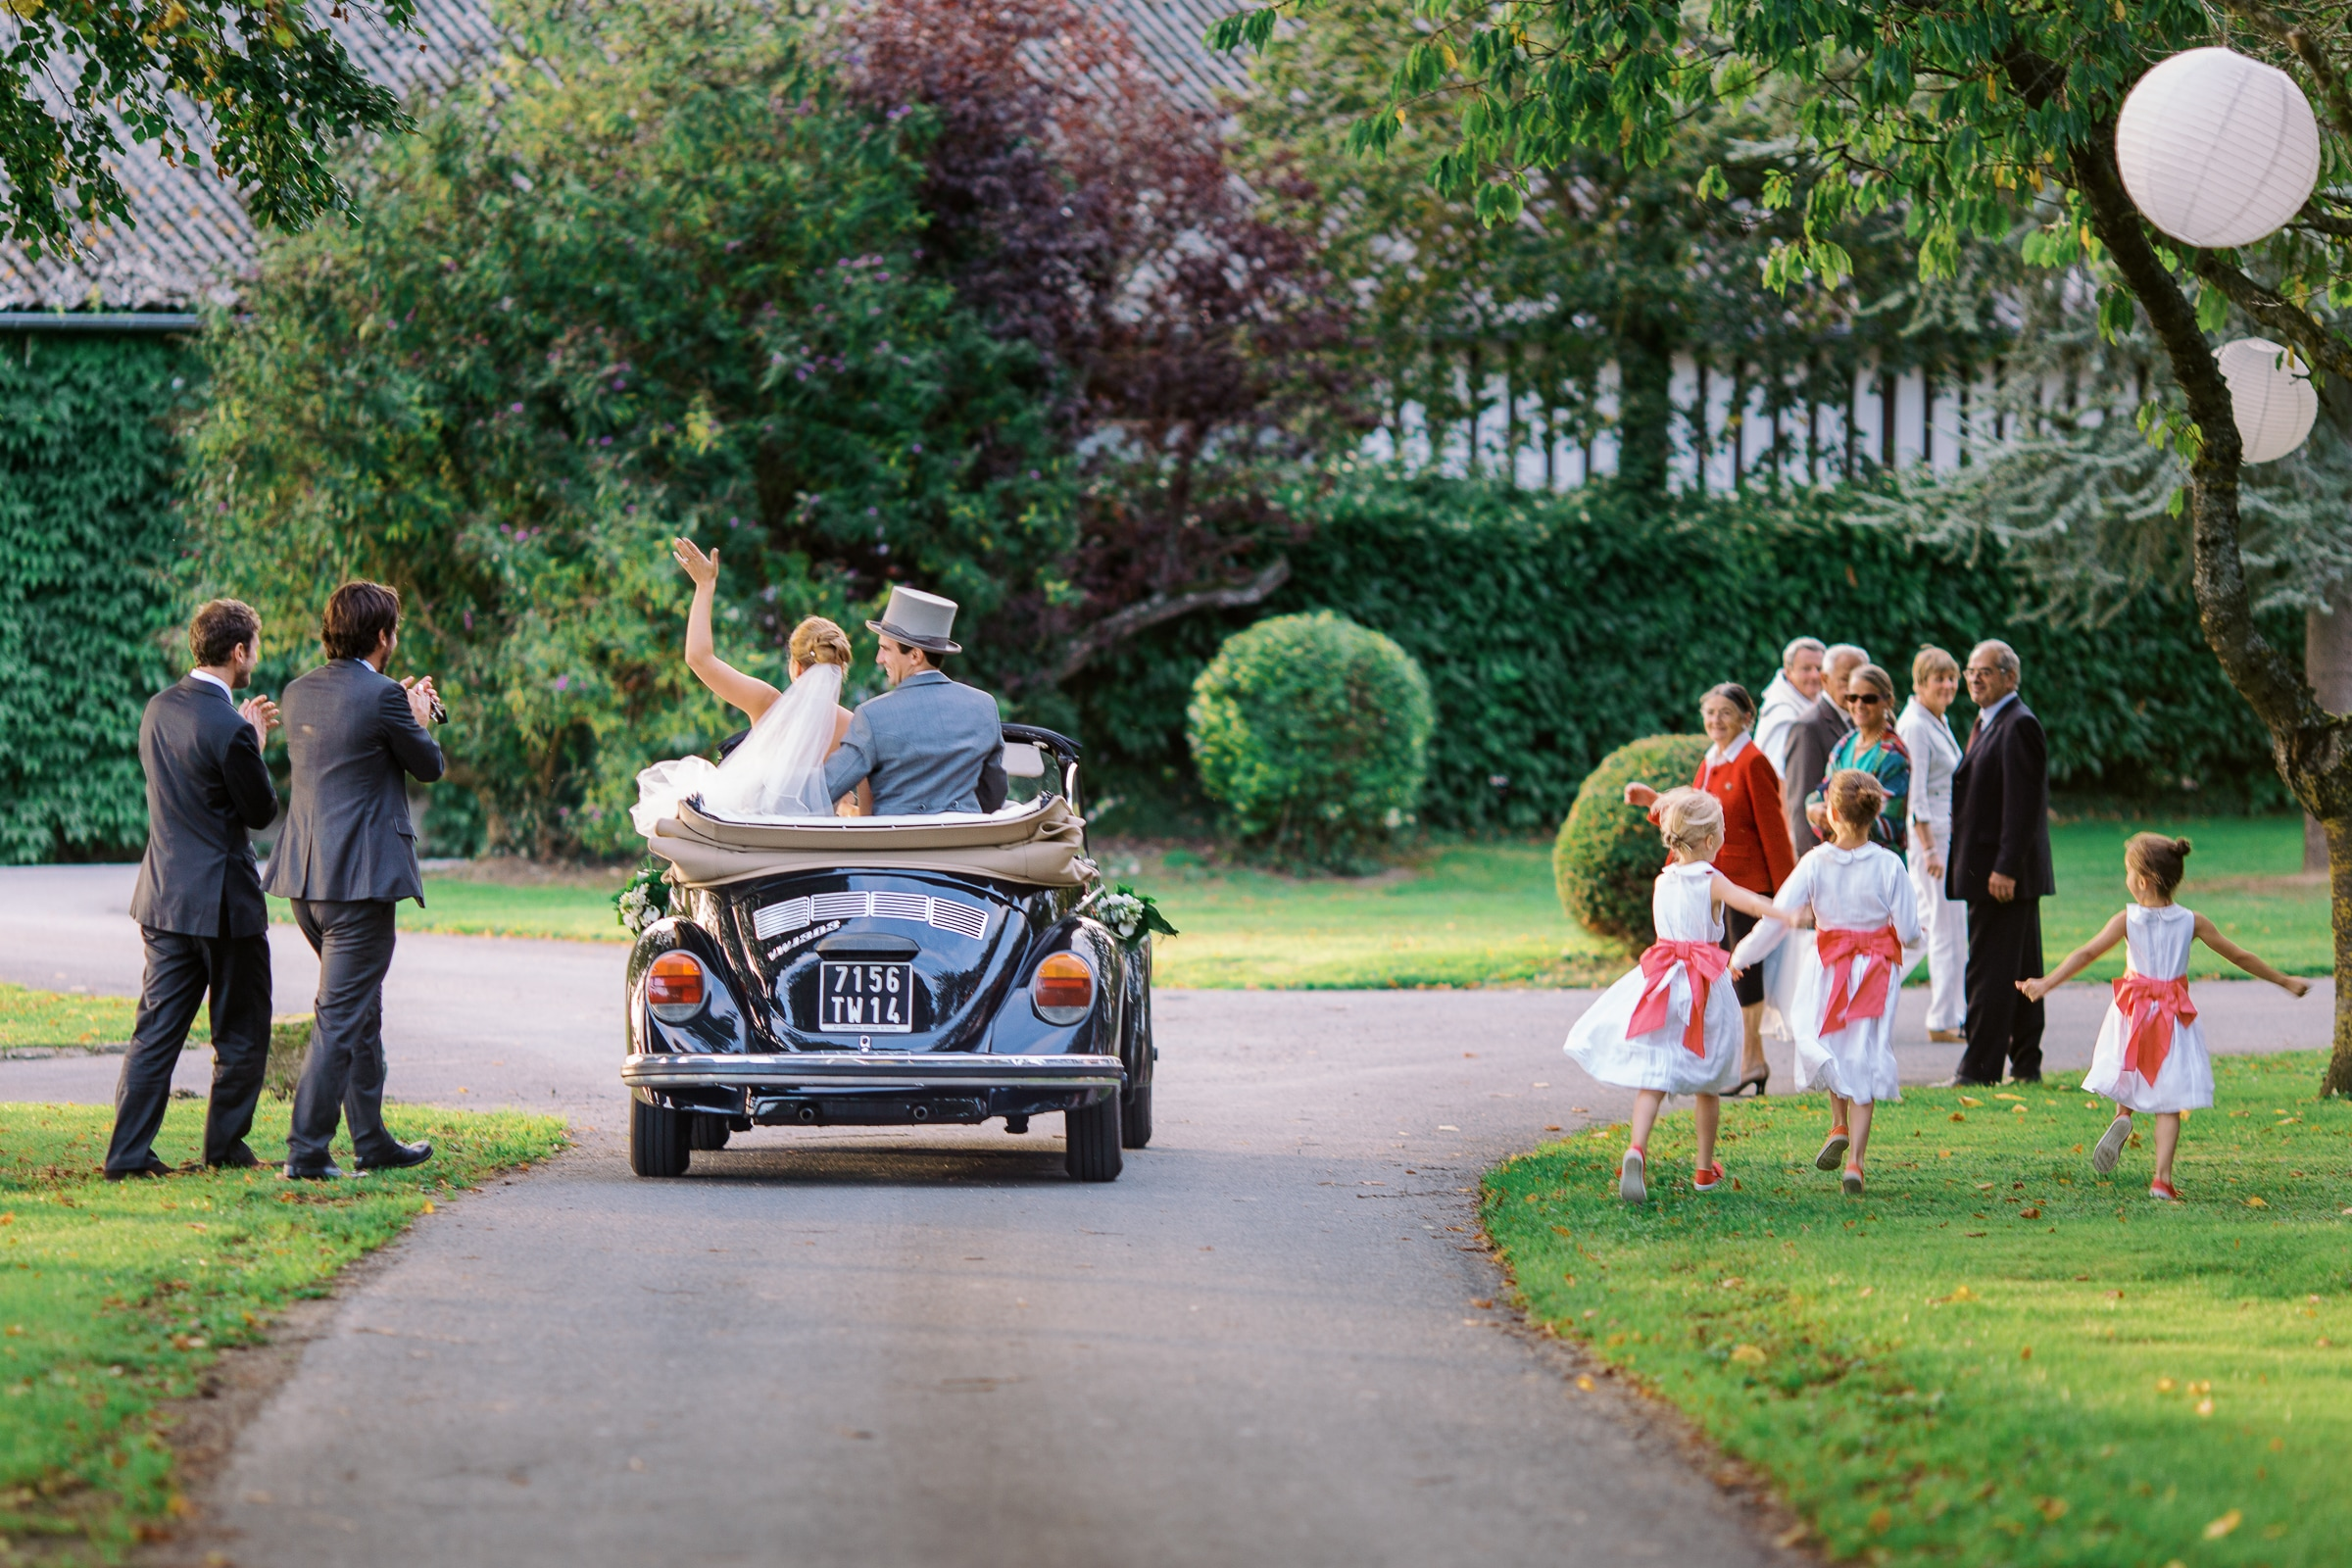 Bride and groom wave goodbye in blue VW bug convertible - photo by Sylvain Bouzat